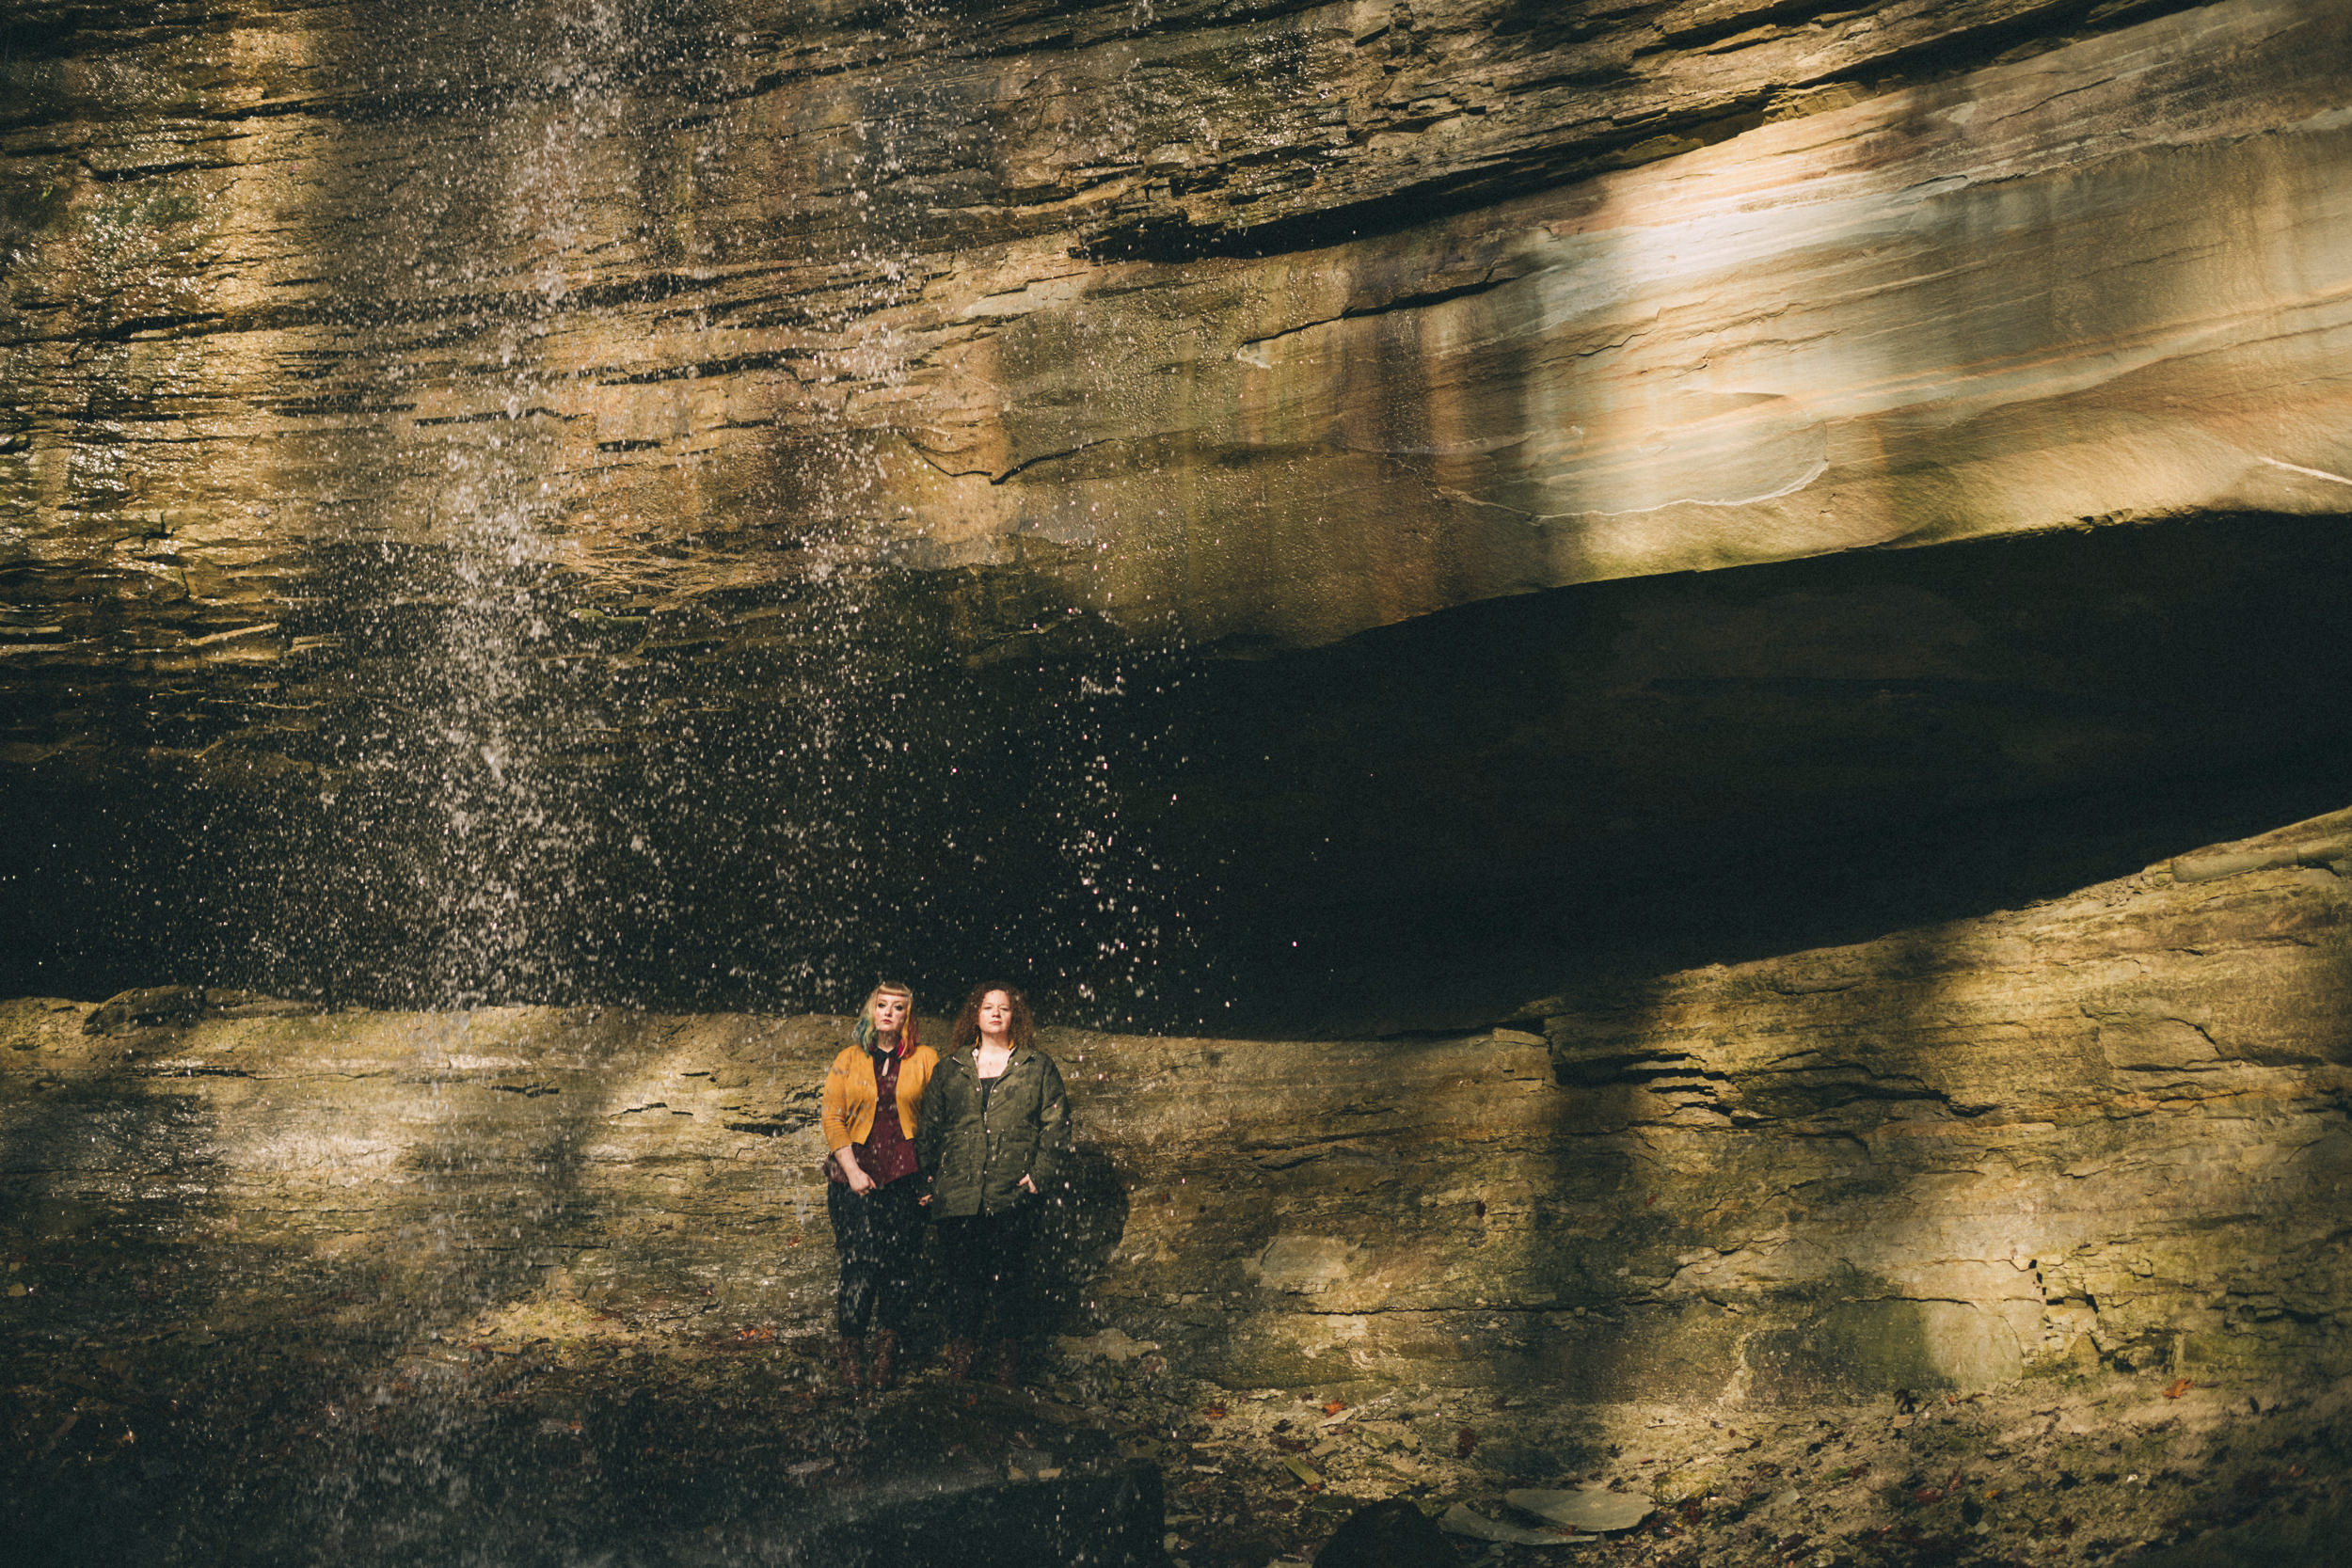 Rebekah-Andrea-Couples-Session-By-Kentucky-Wedding-Photographer-Sarah-Katherine-Davis-Photography-118edit.jpg